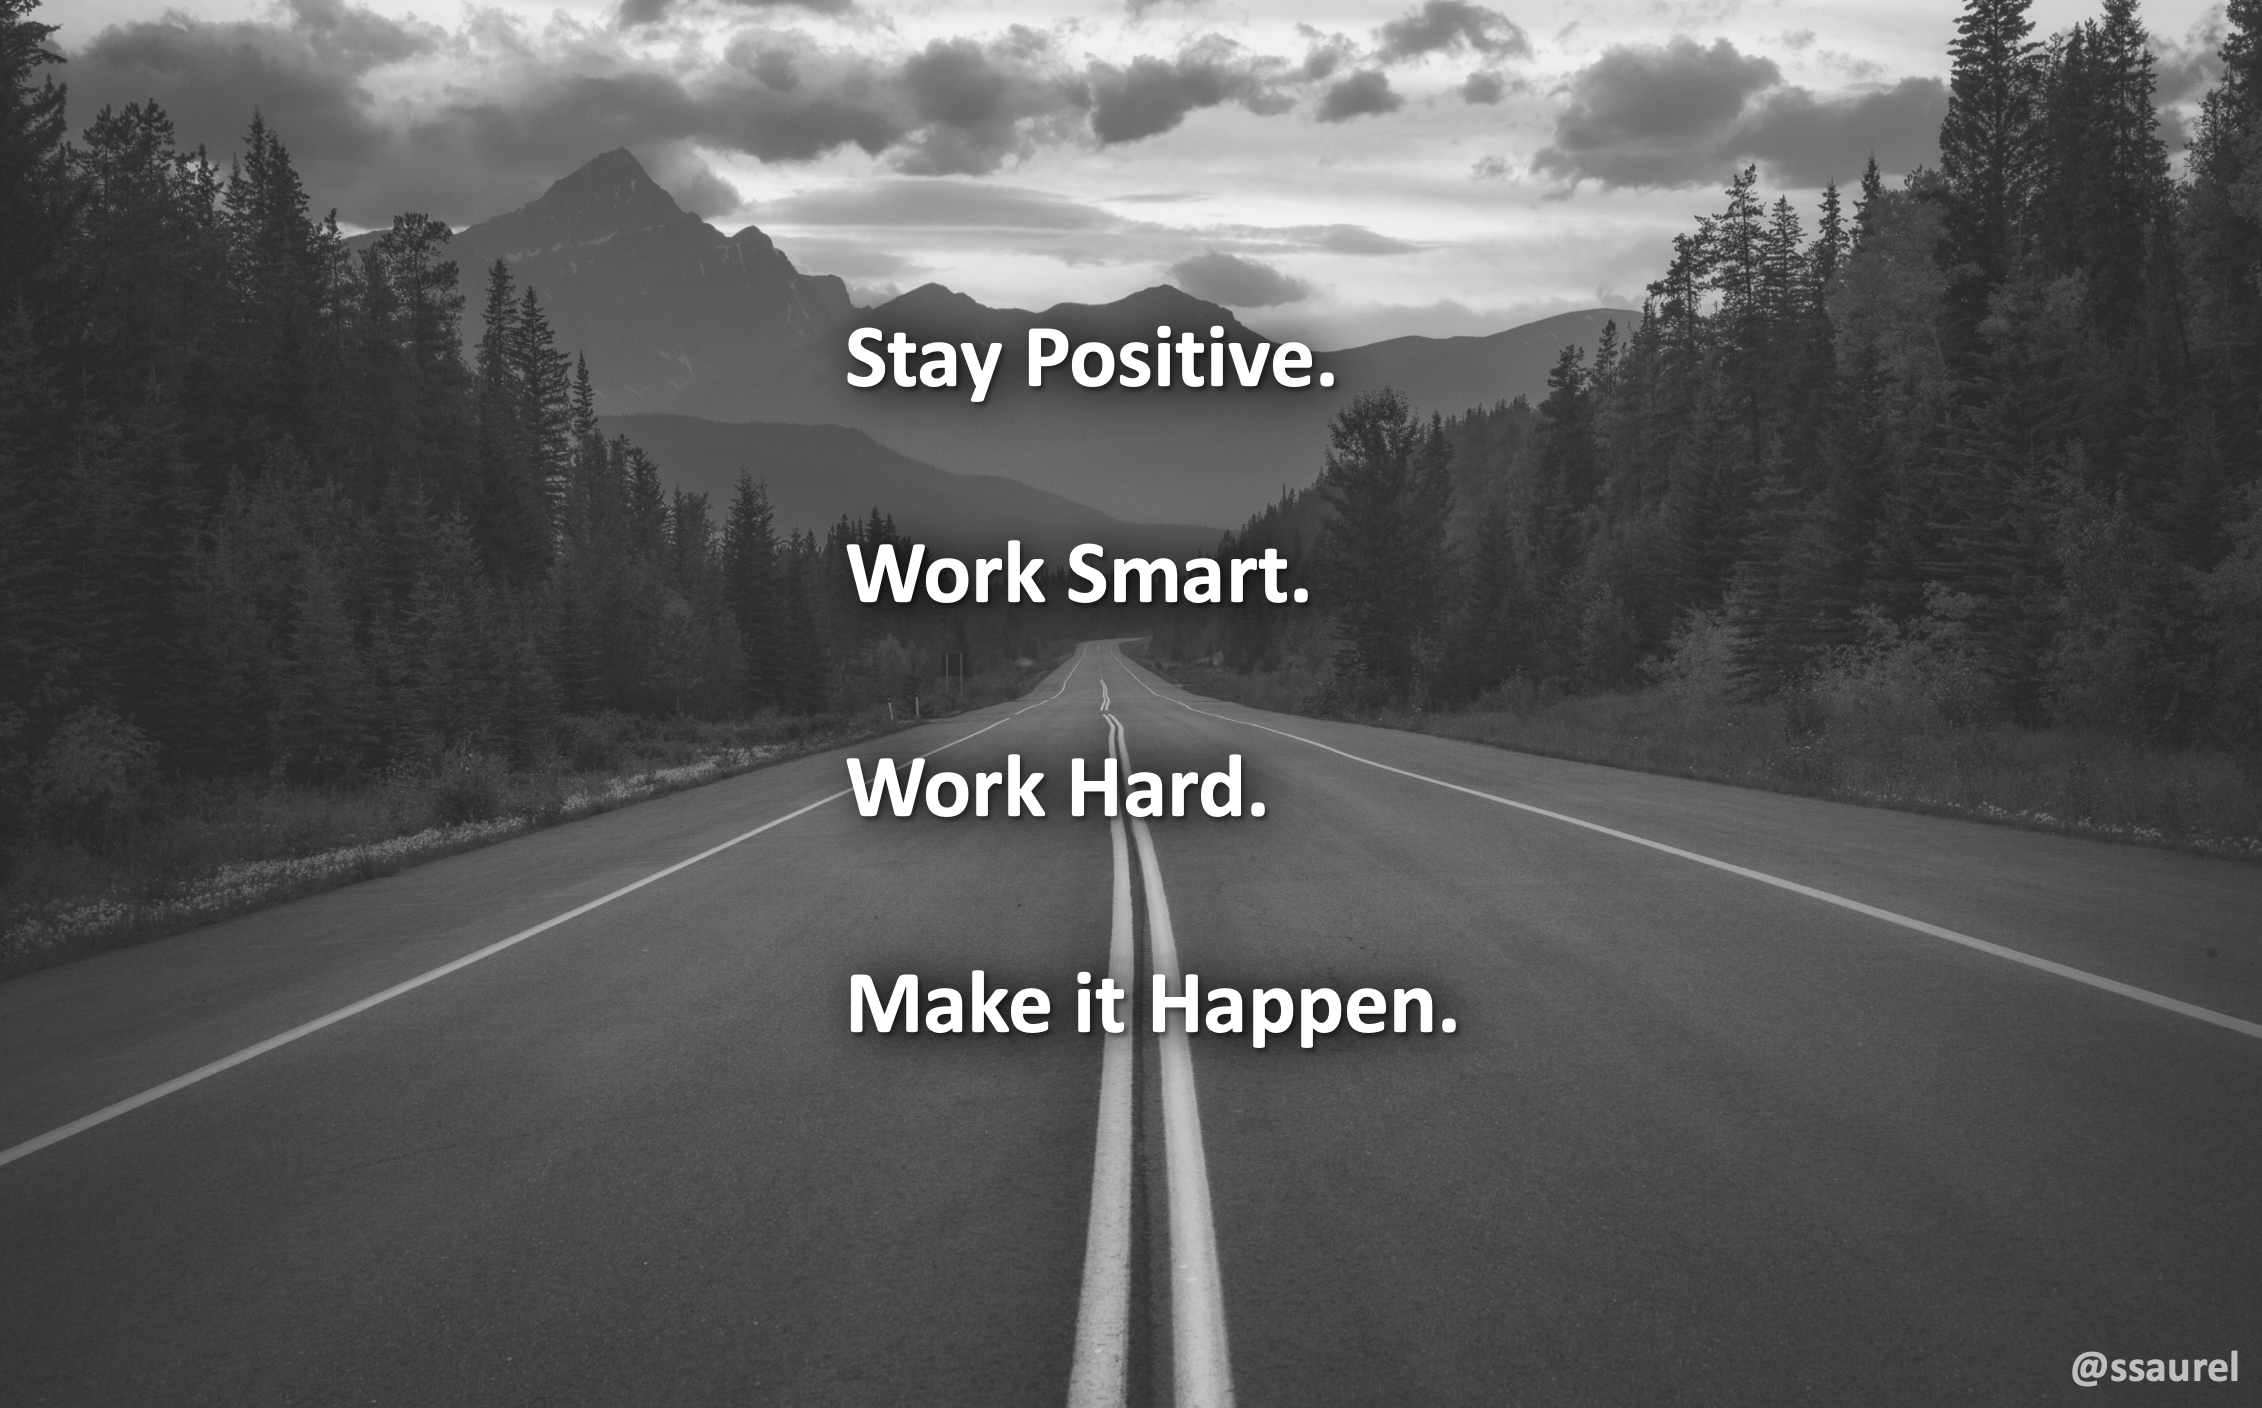 [Image] Stay Positive. Work Smart. Work Hard. Make it Happen.